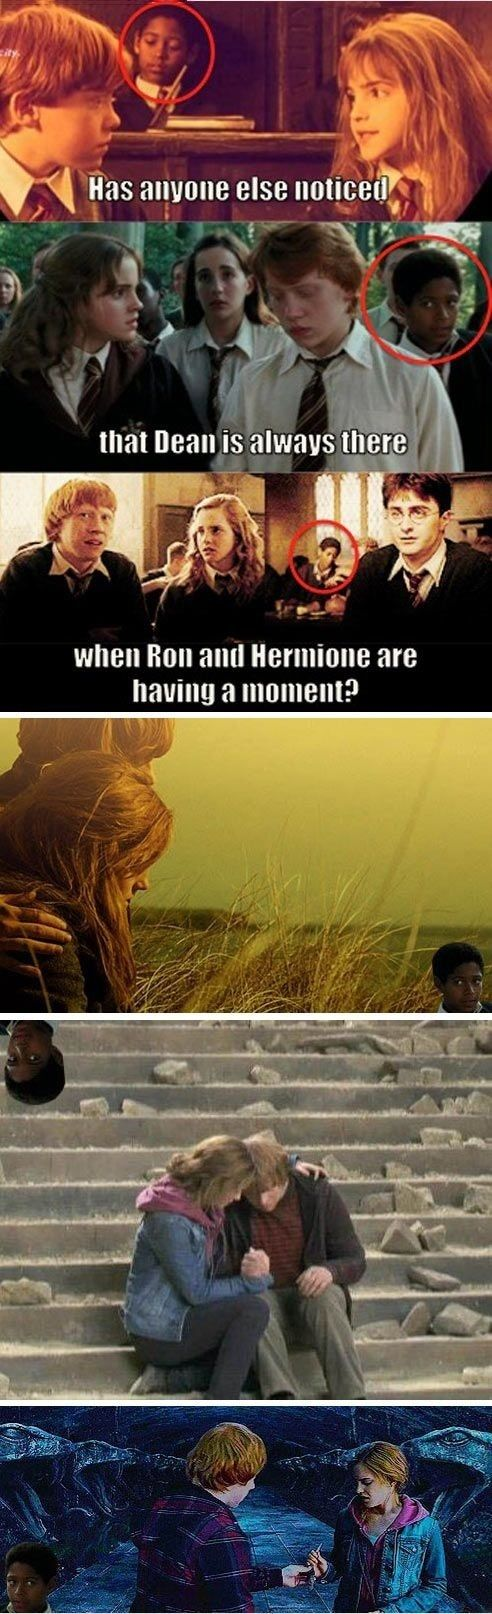 Interrupting Dean. Hahaha, poor Ron and Hermione. :p